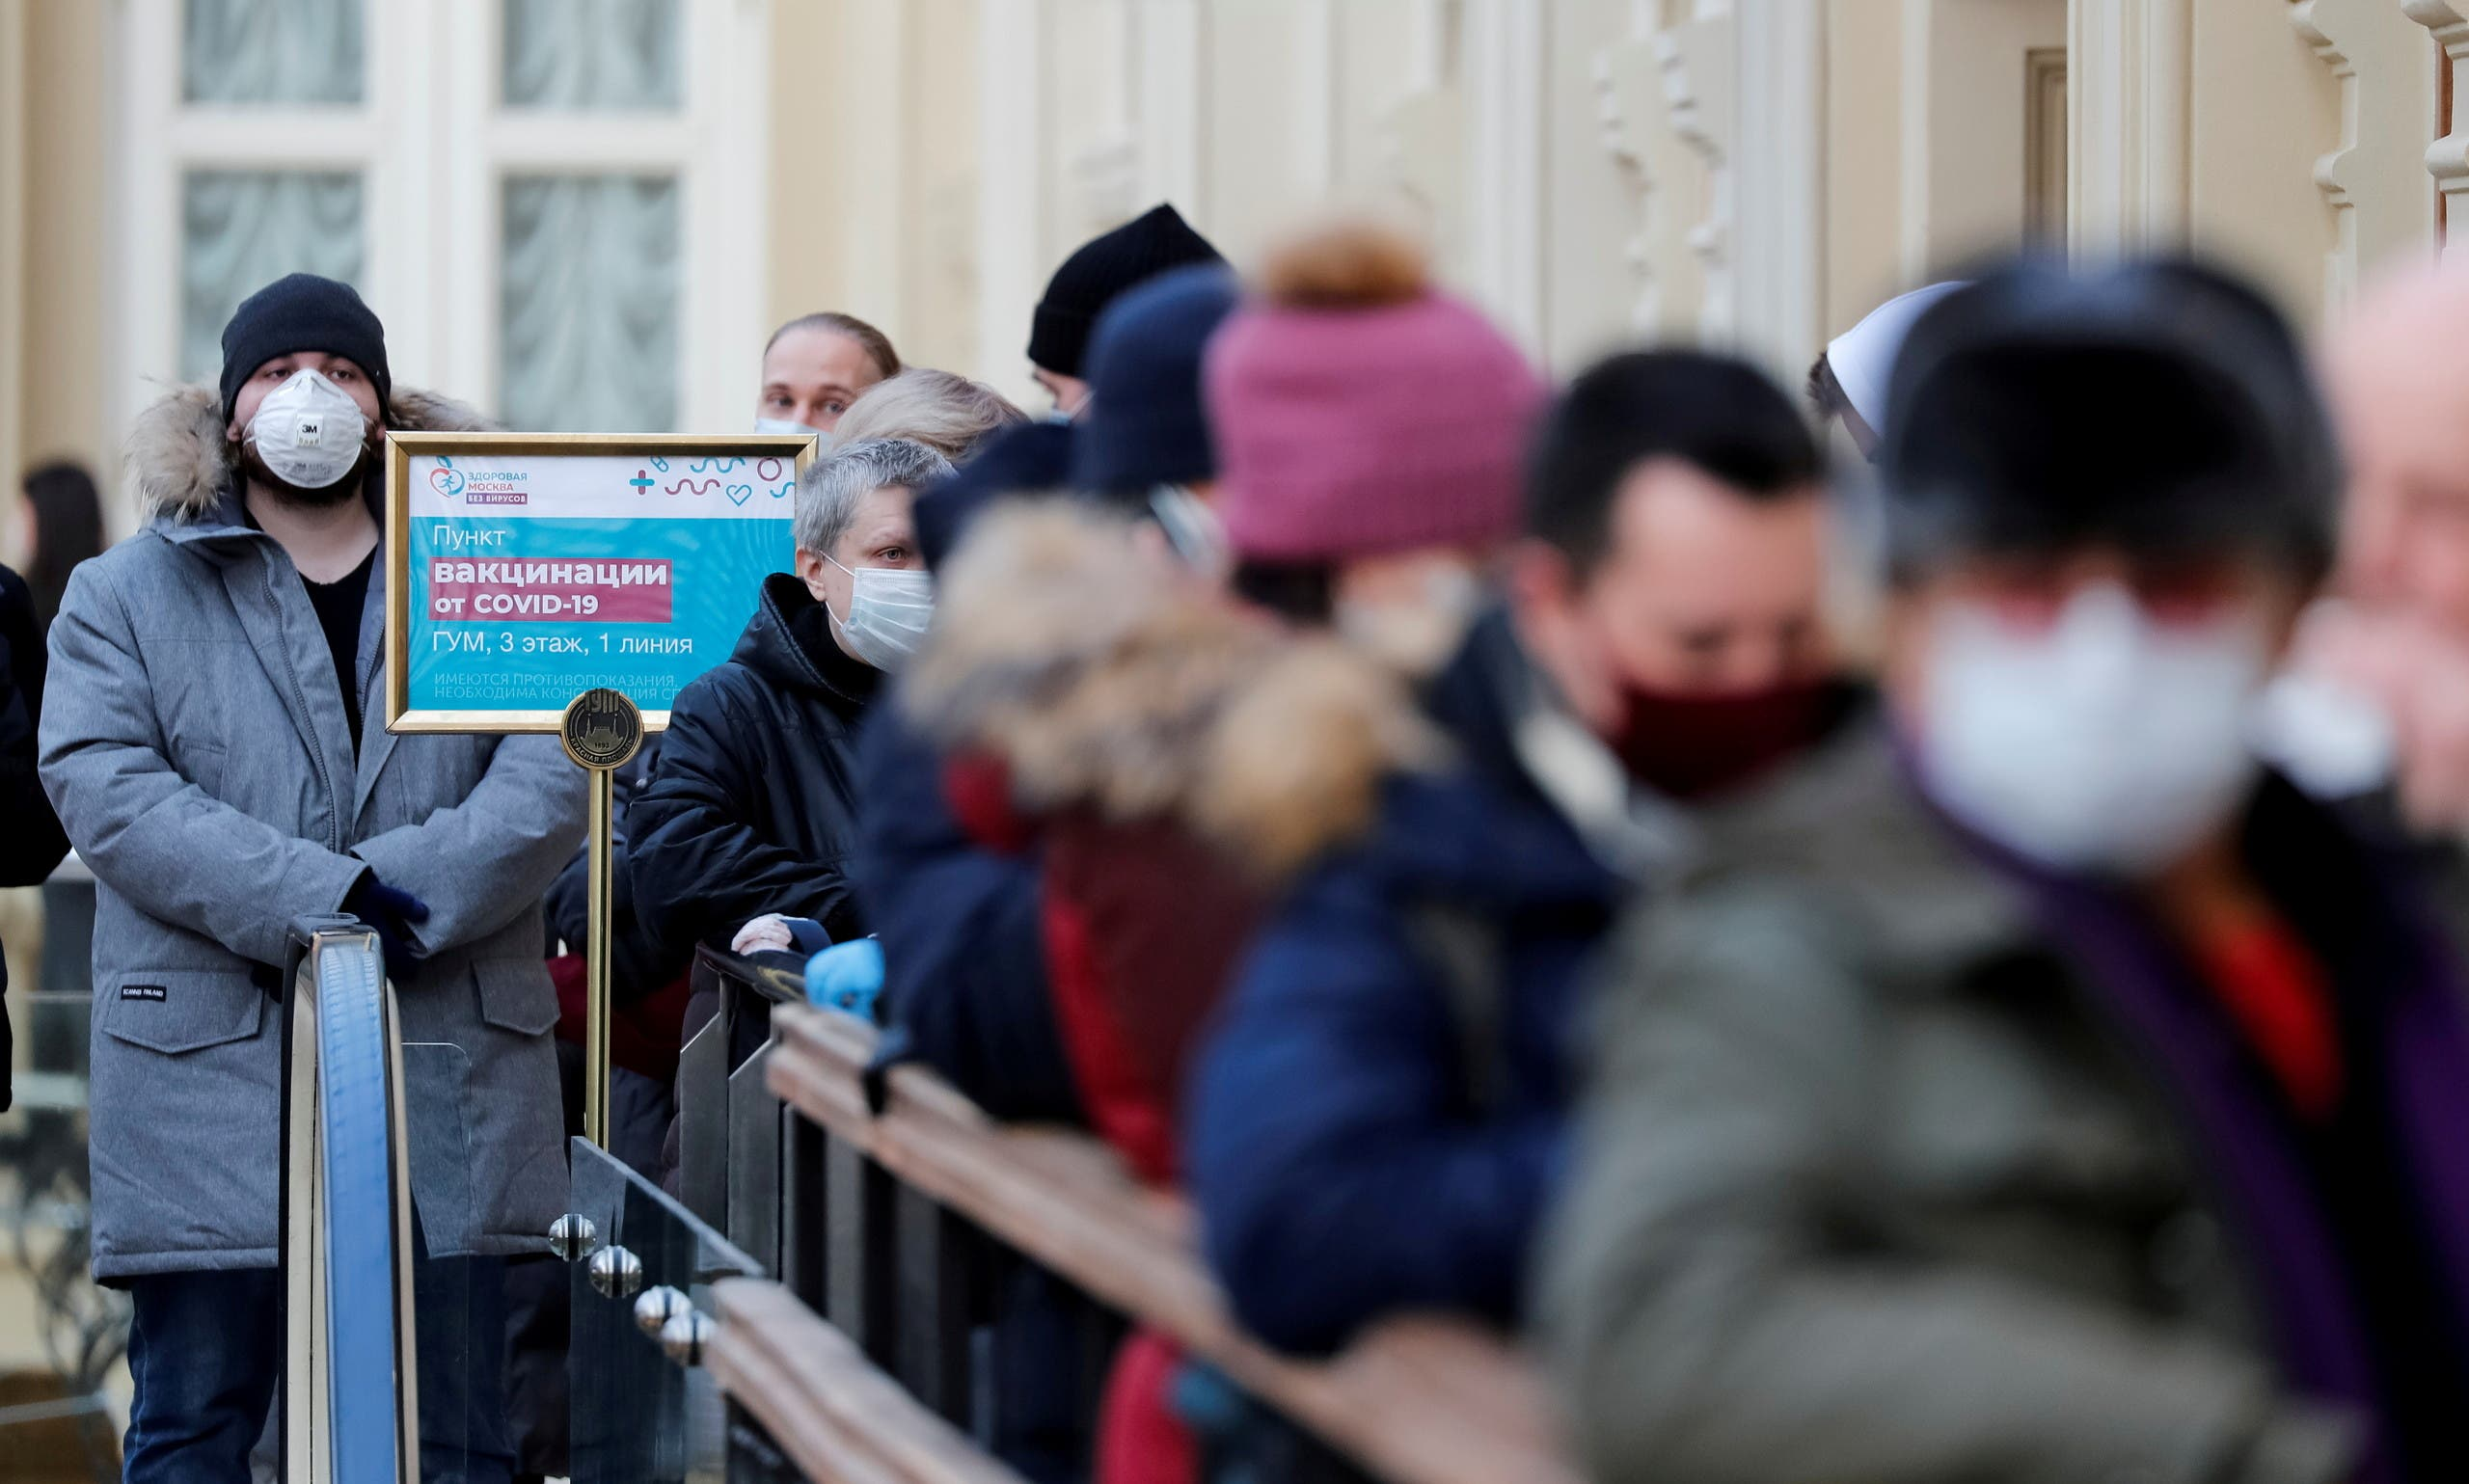 People line up to receive a dose of Sputnik V (Gam-COVID-Vac) vaccine against the coronavirus disease (COVID-19) at a vaccination centre in the State Department Store, GUM, in central Moscow, Russia January 18, 2021. (File Photo: Reuters)